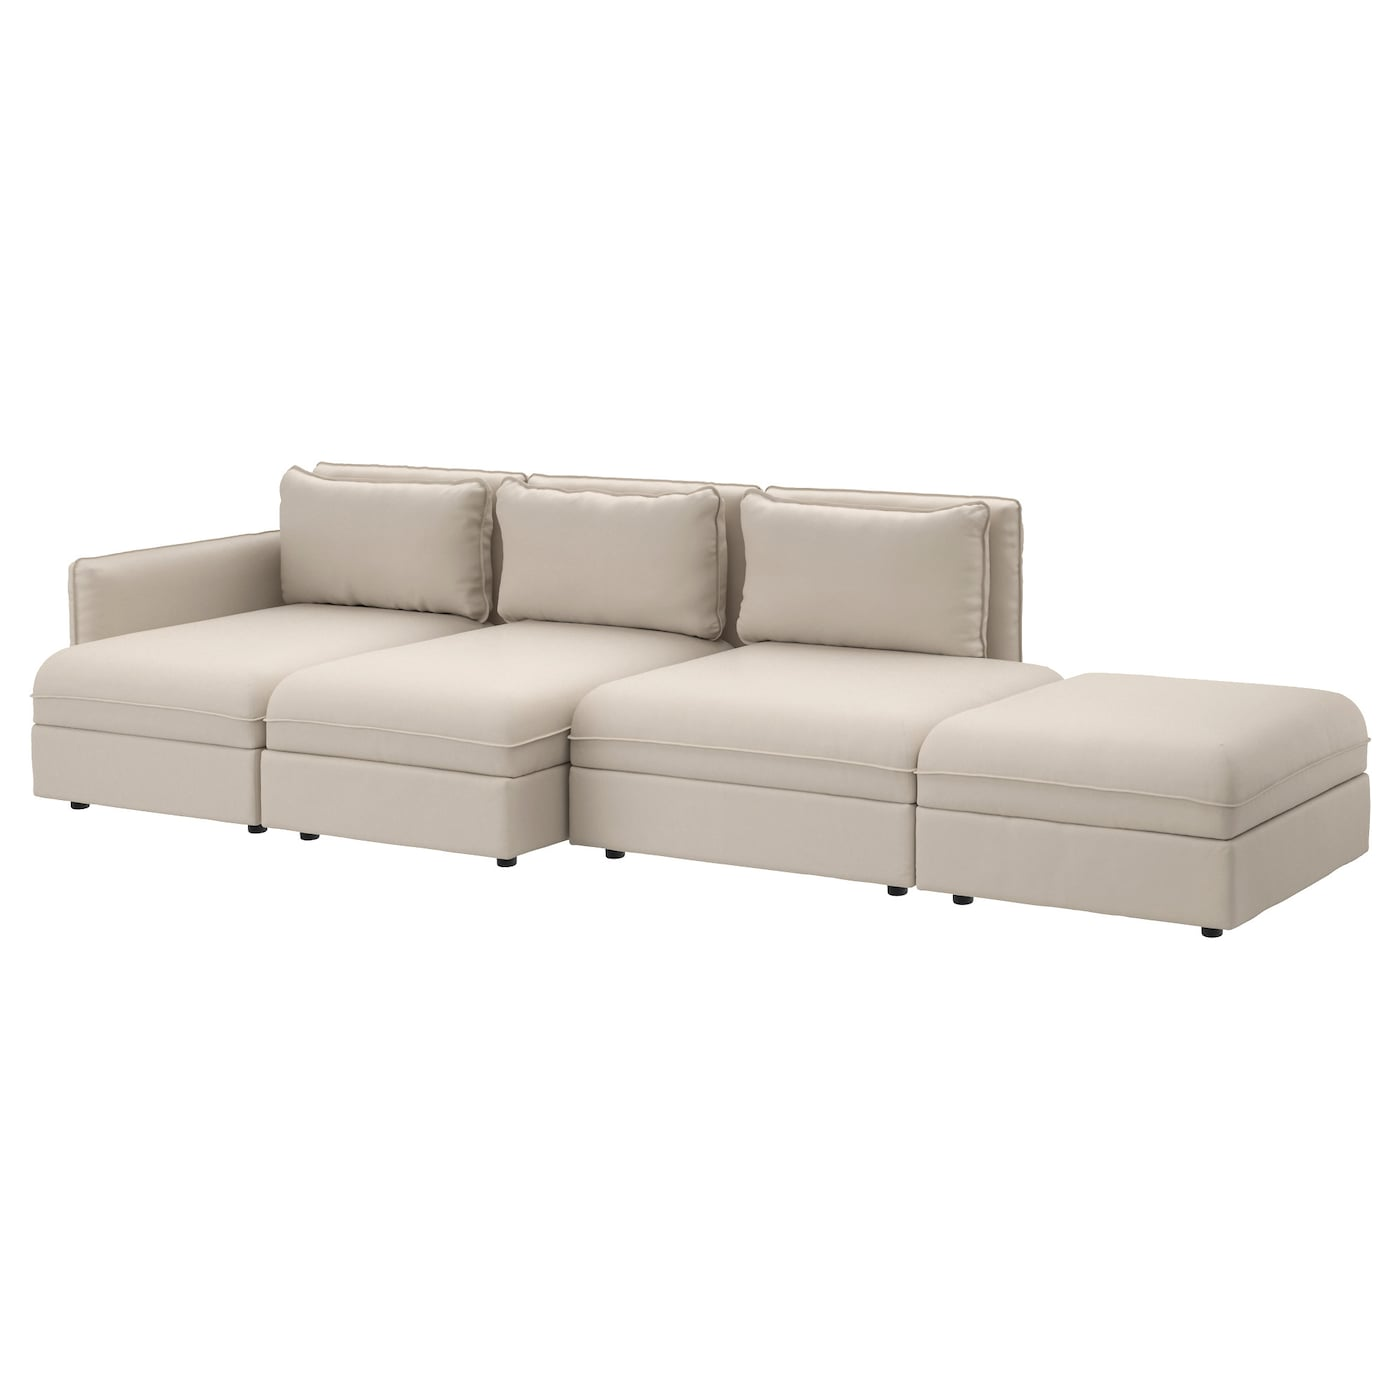 vallentuna 4 seat sofa ramna dark beige ikea. Black Bedroom Furniture Sets. Home Design Ideas